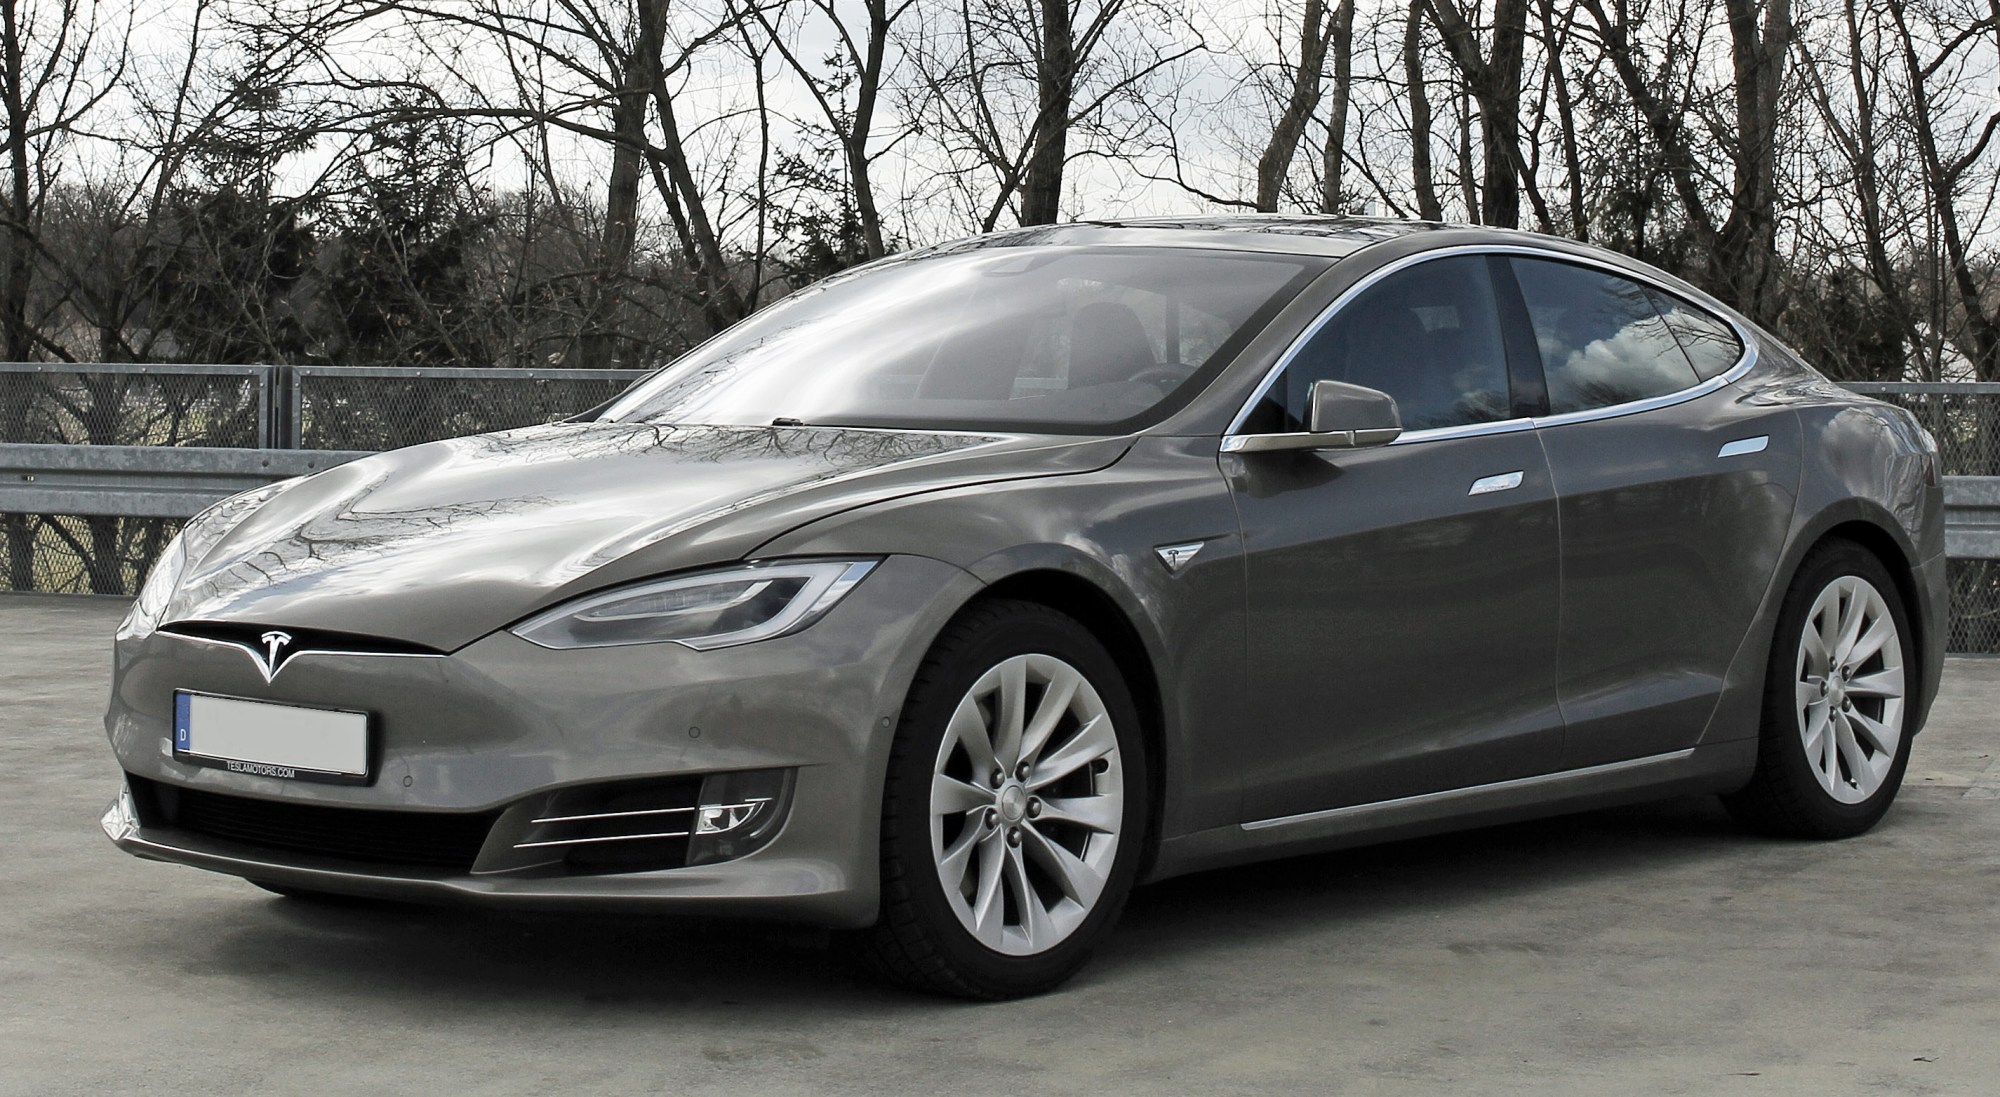 hight resolution of the tesla model s was the world s top selling plug in car for two years running 2015 and 2016